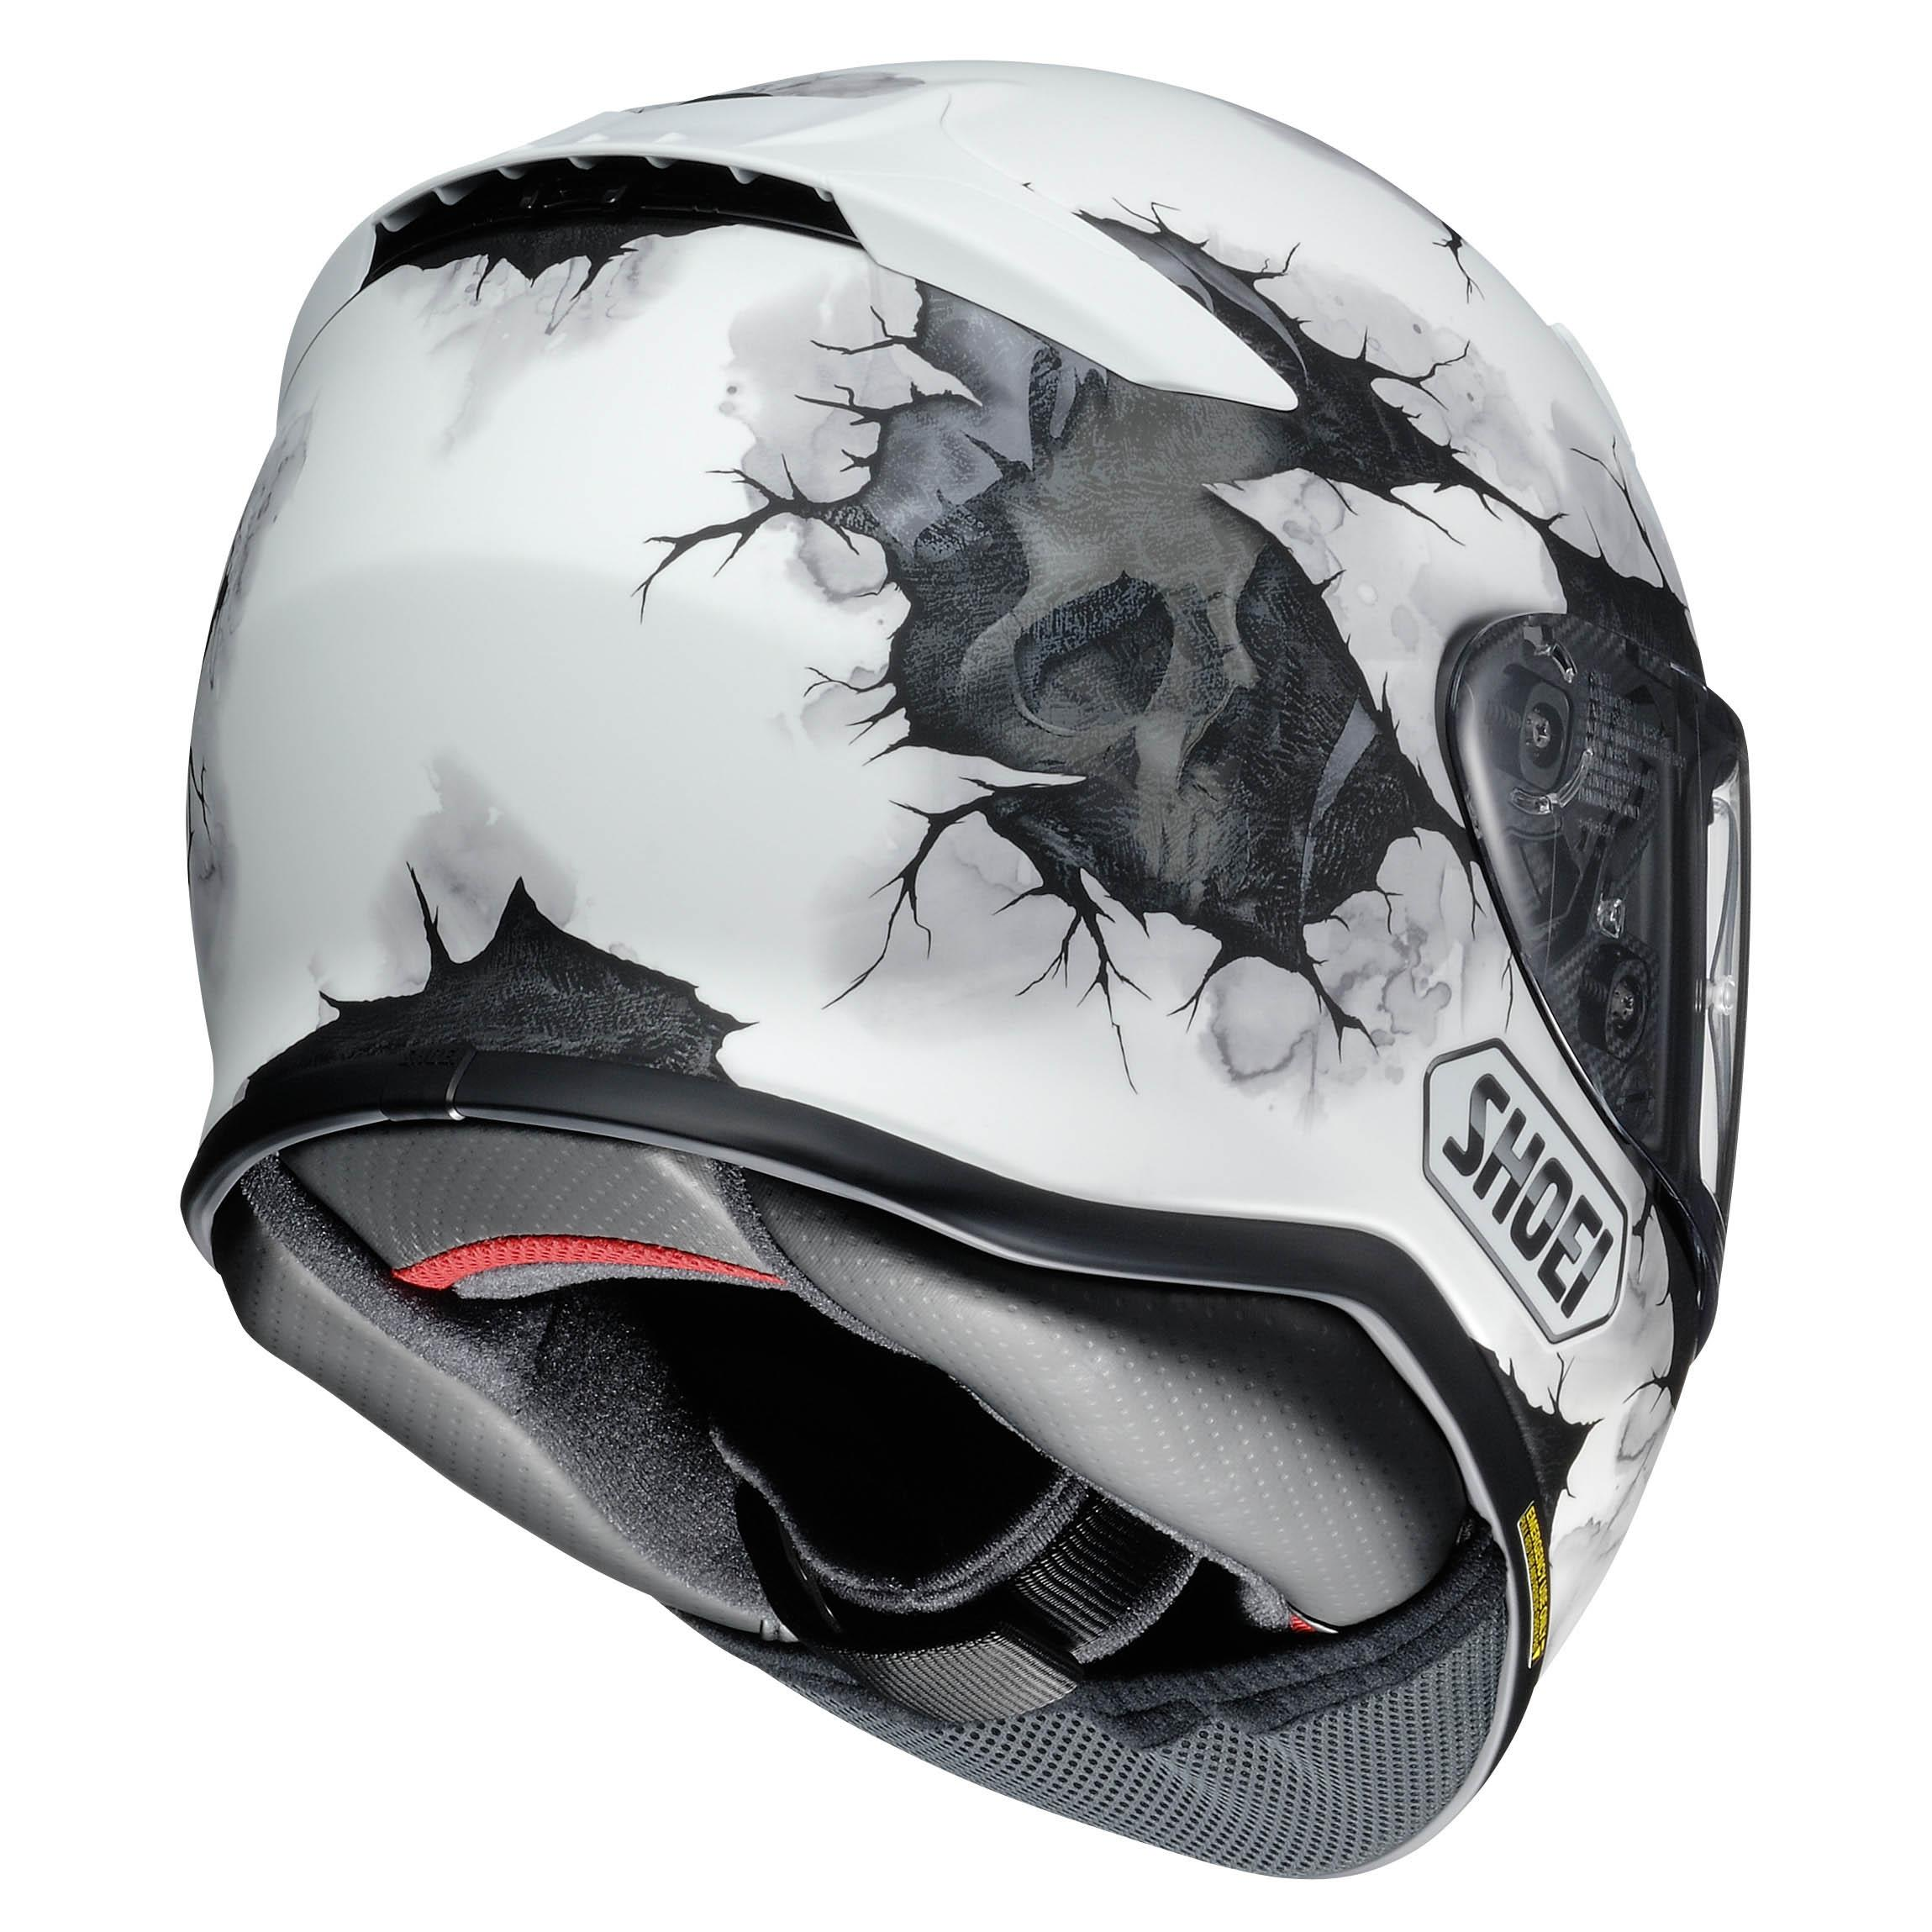 shoei nxr ruts helmet tc 6 white online motorcycle accessories australia scm. Black Bedroom Furniture Sets. Home Design Ideas